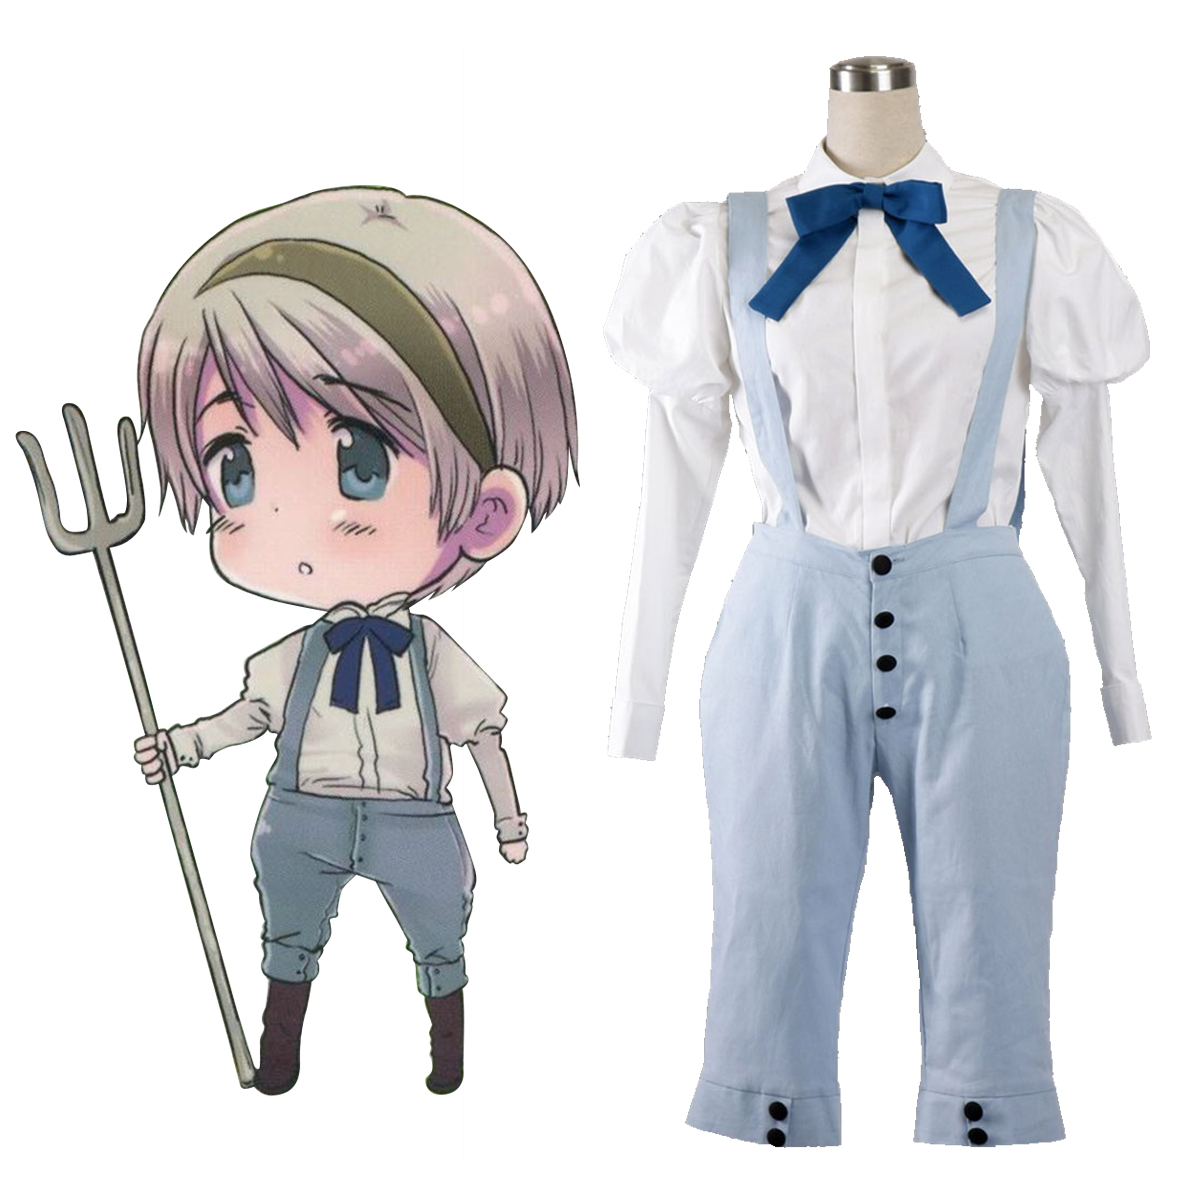 Axis Powers Hetalia Ukraine 1 Anime Cosplay Costumes Outfit